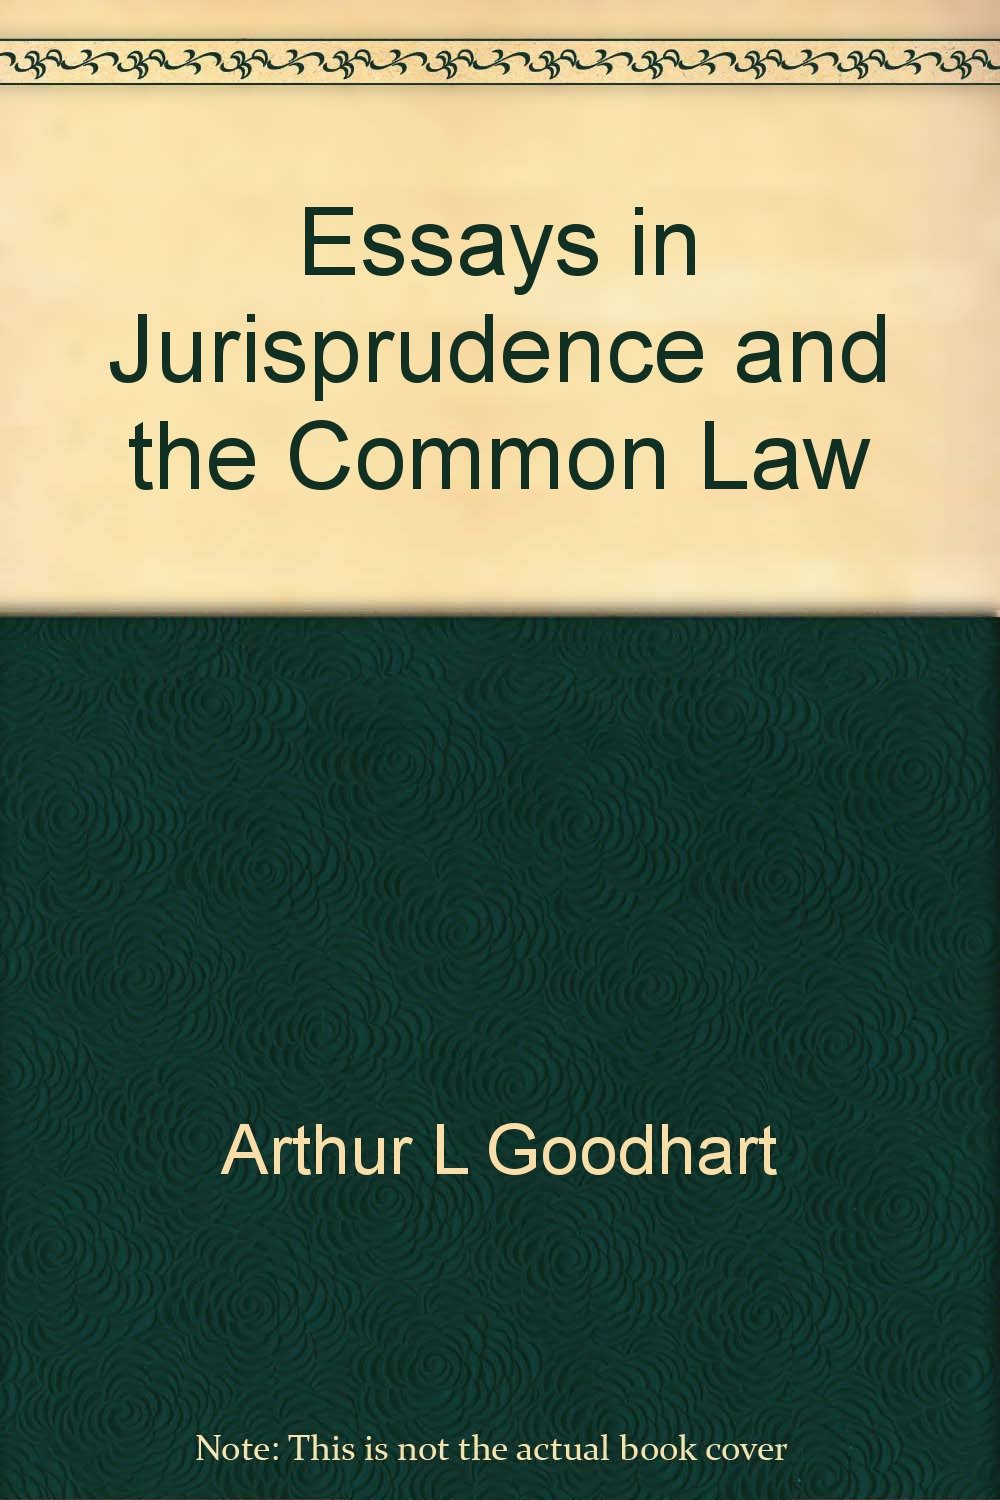 essays in jurisprudence and the common law co uk arthur l essays in jurisprudence and the common law co uk arthur l goodhart books